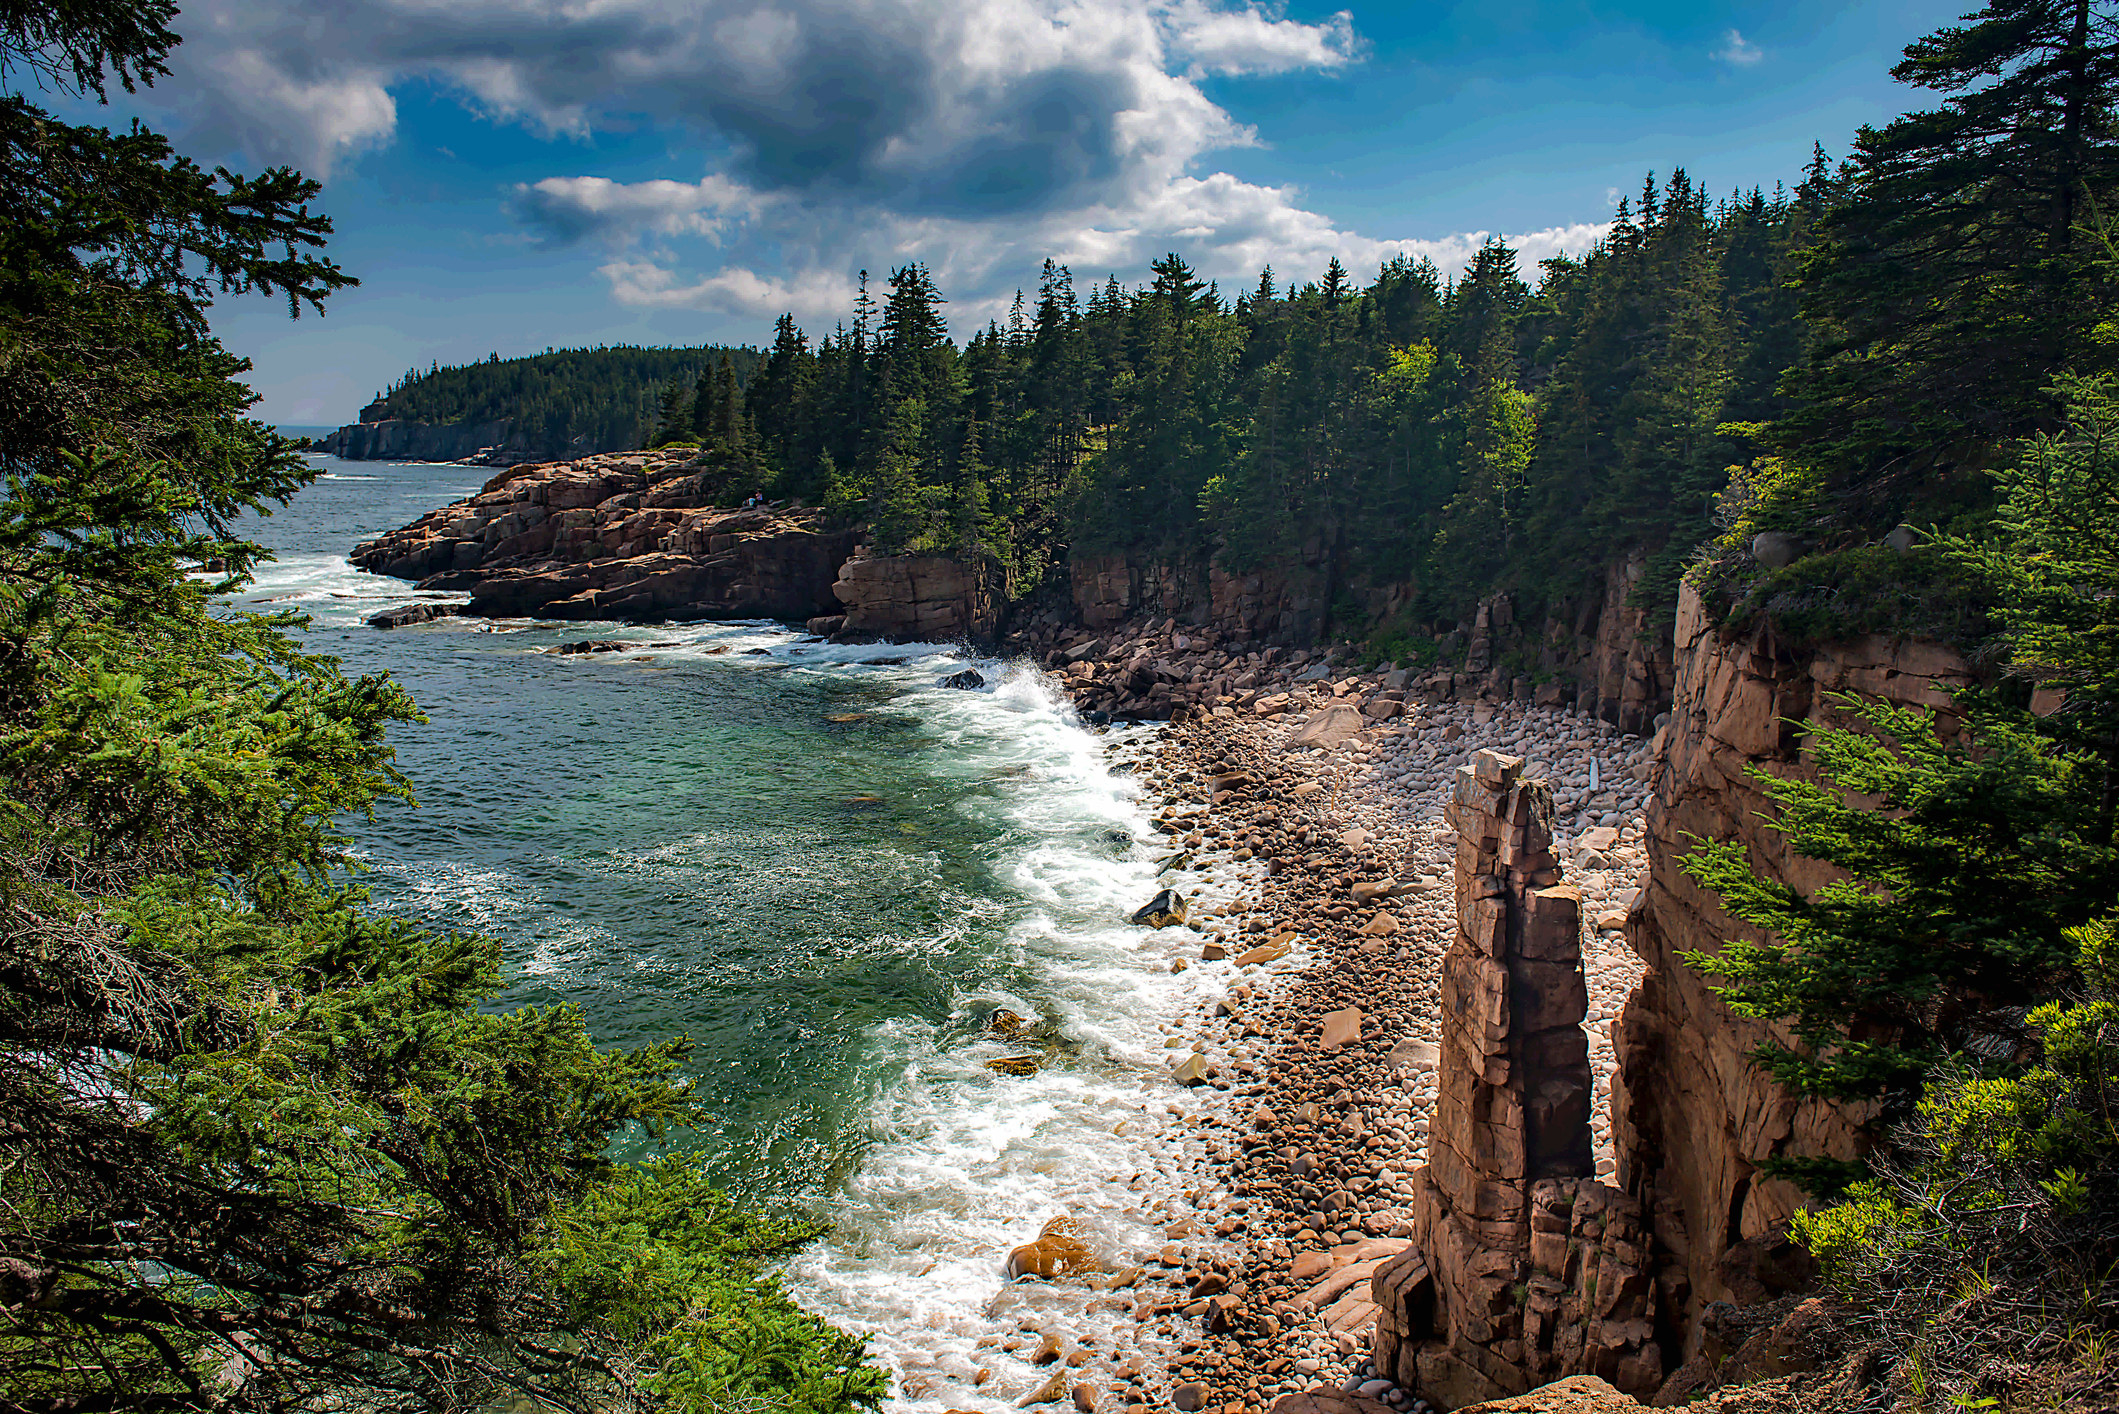 A view of Acadia National Park